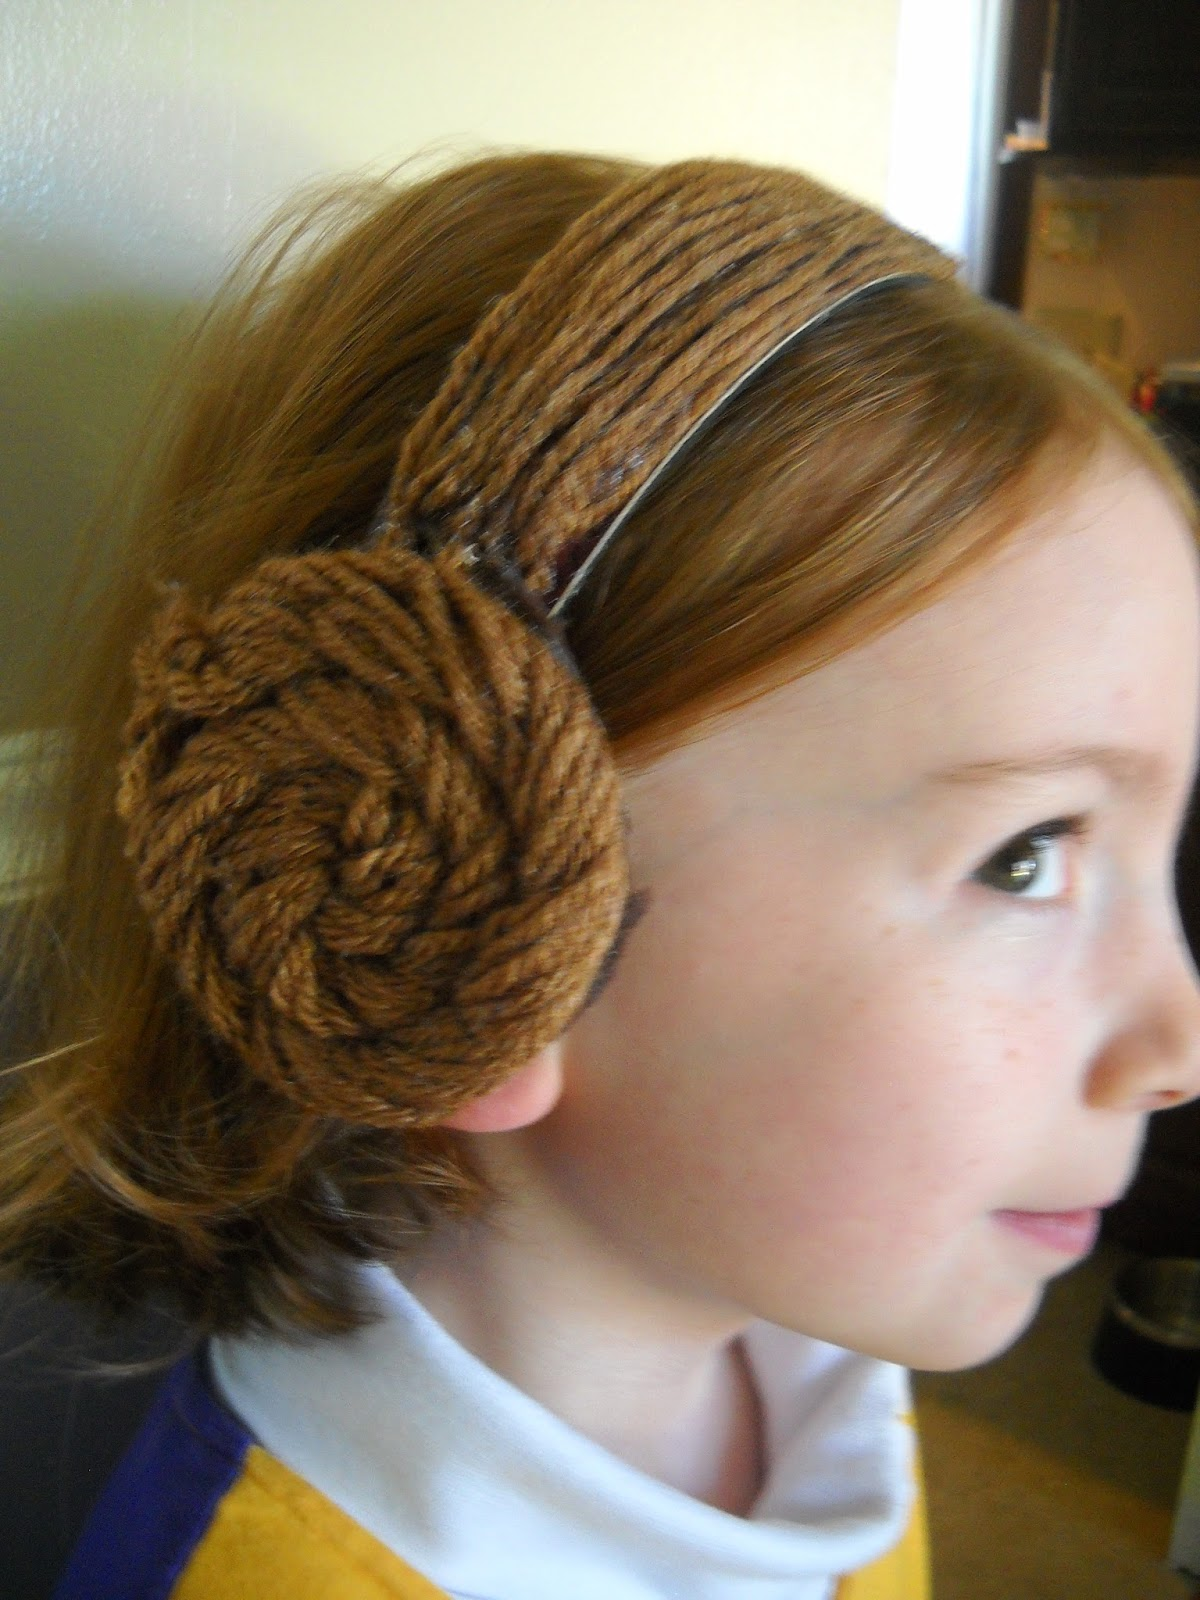 Mcmaven Haven Princess Leia Headband